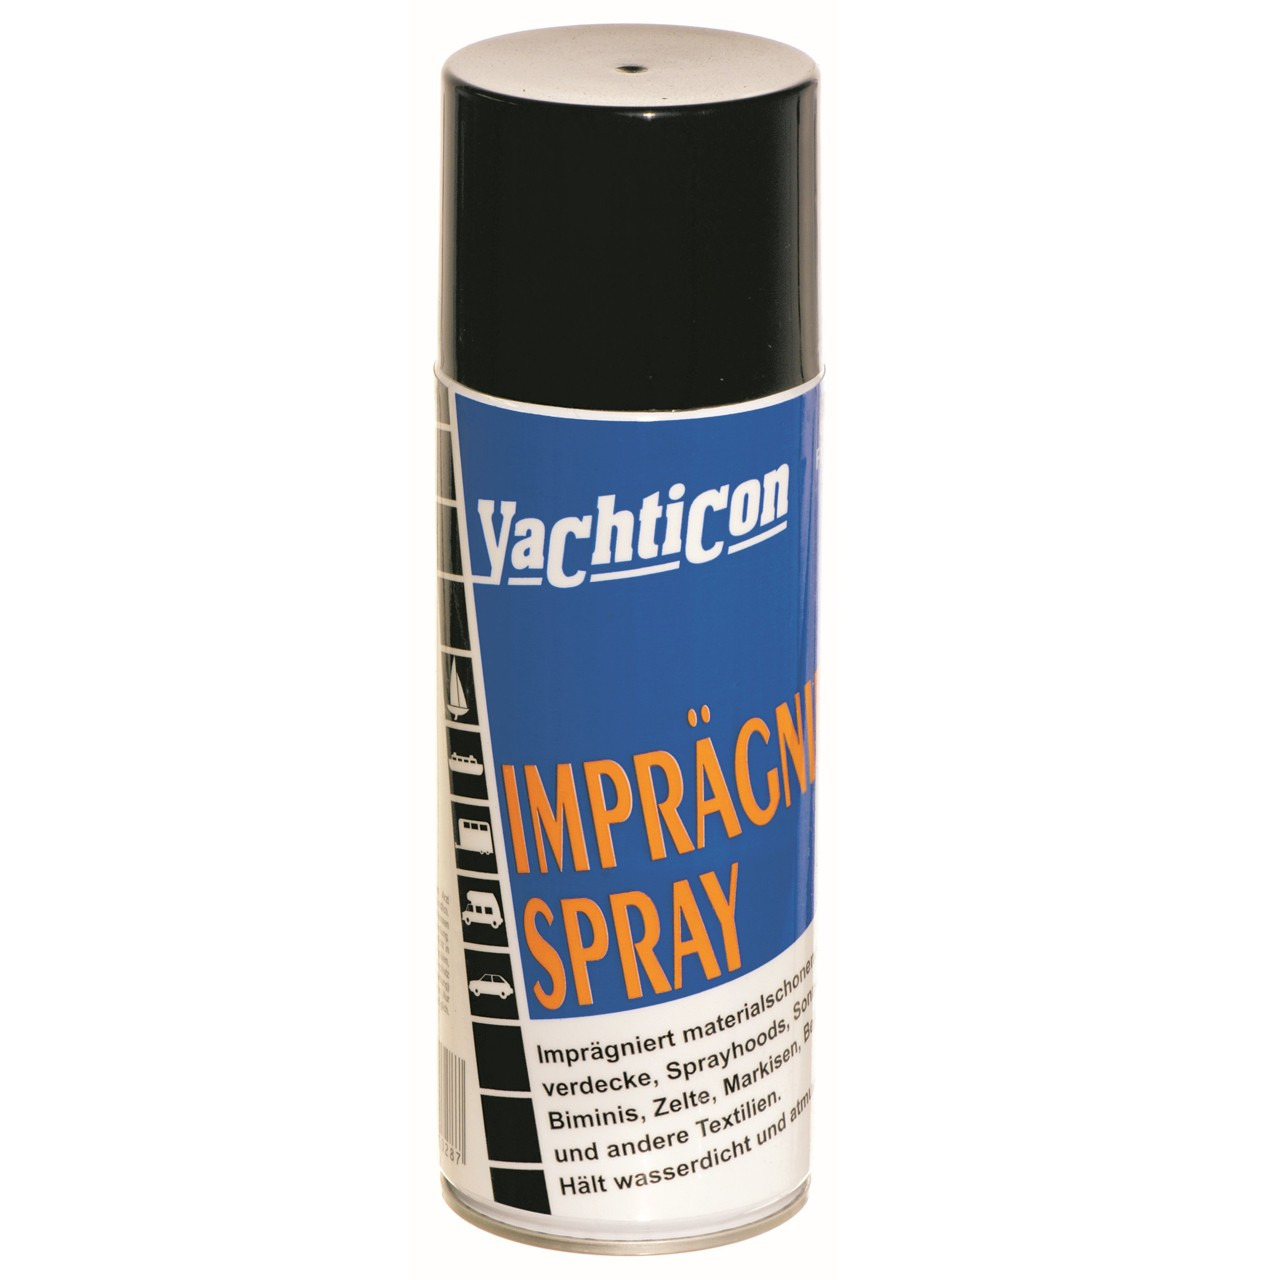 Yachticon Impr Gnierspray 400ml